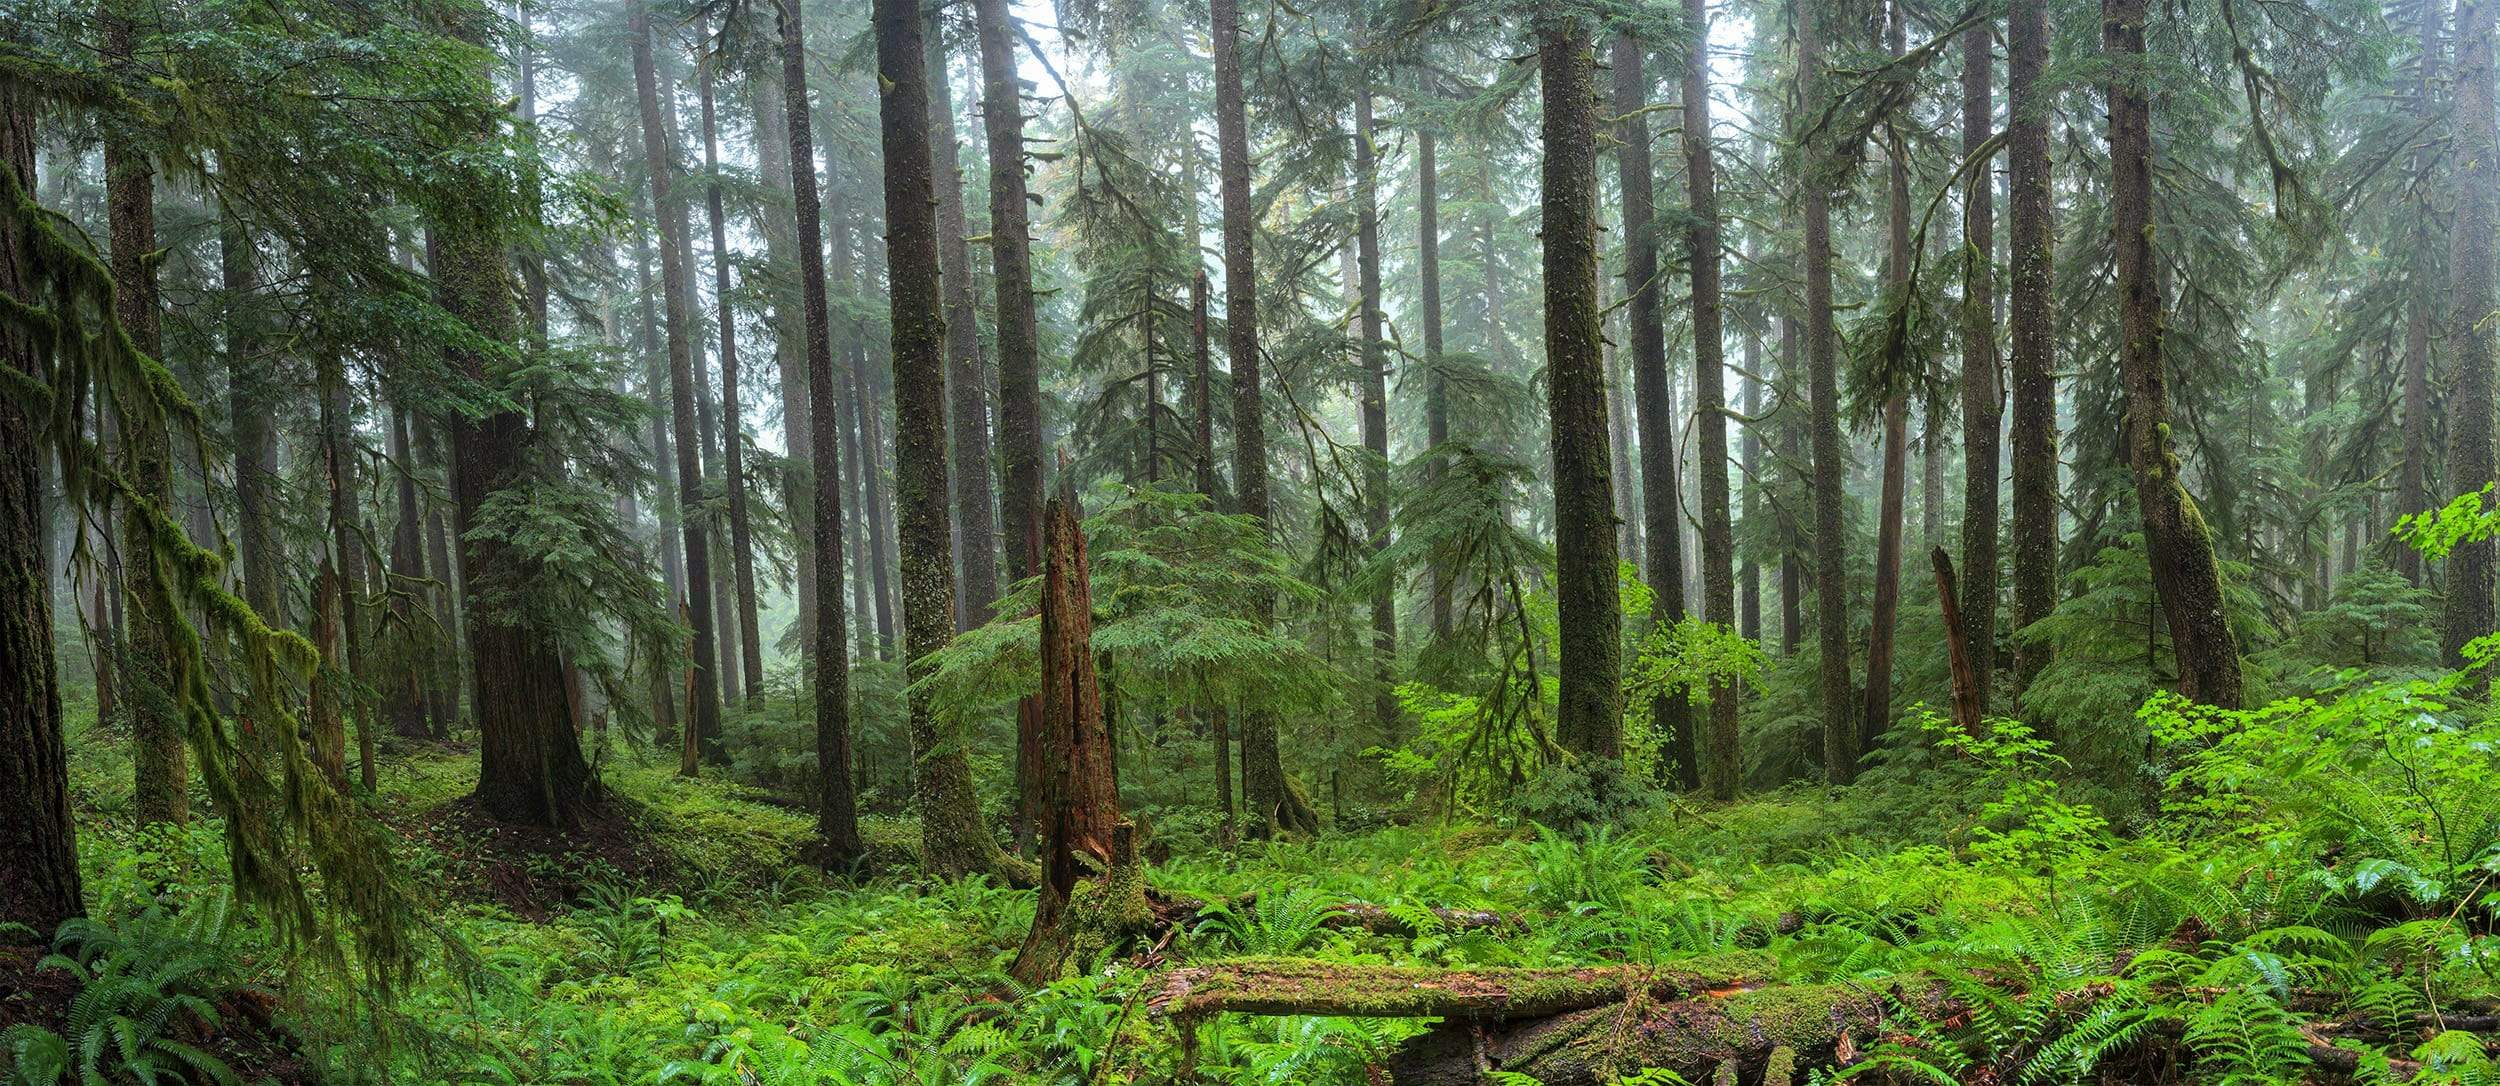 Foggy Green forest with ferns